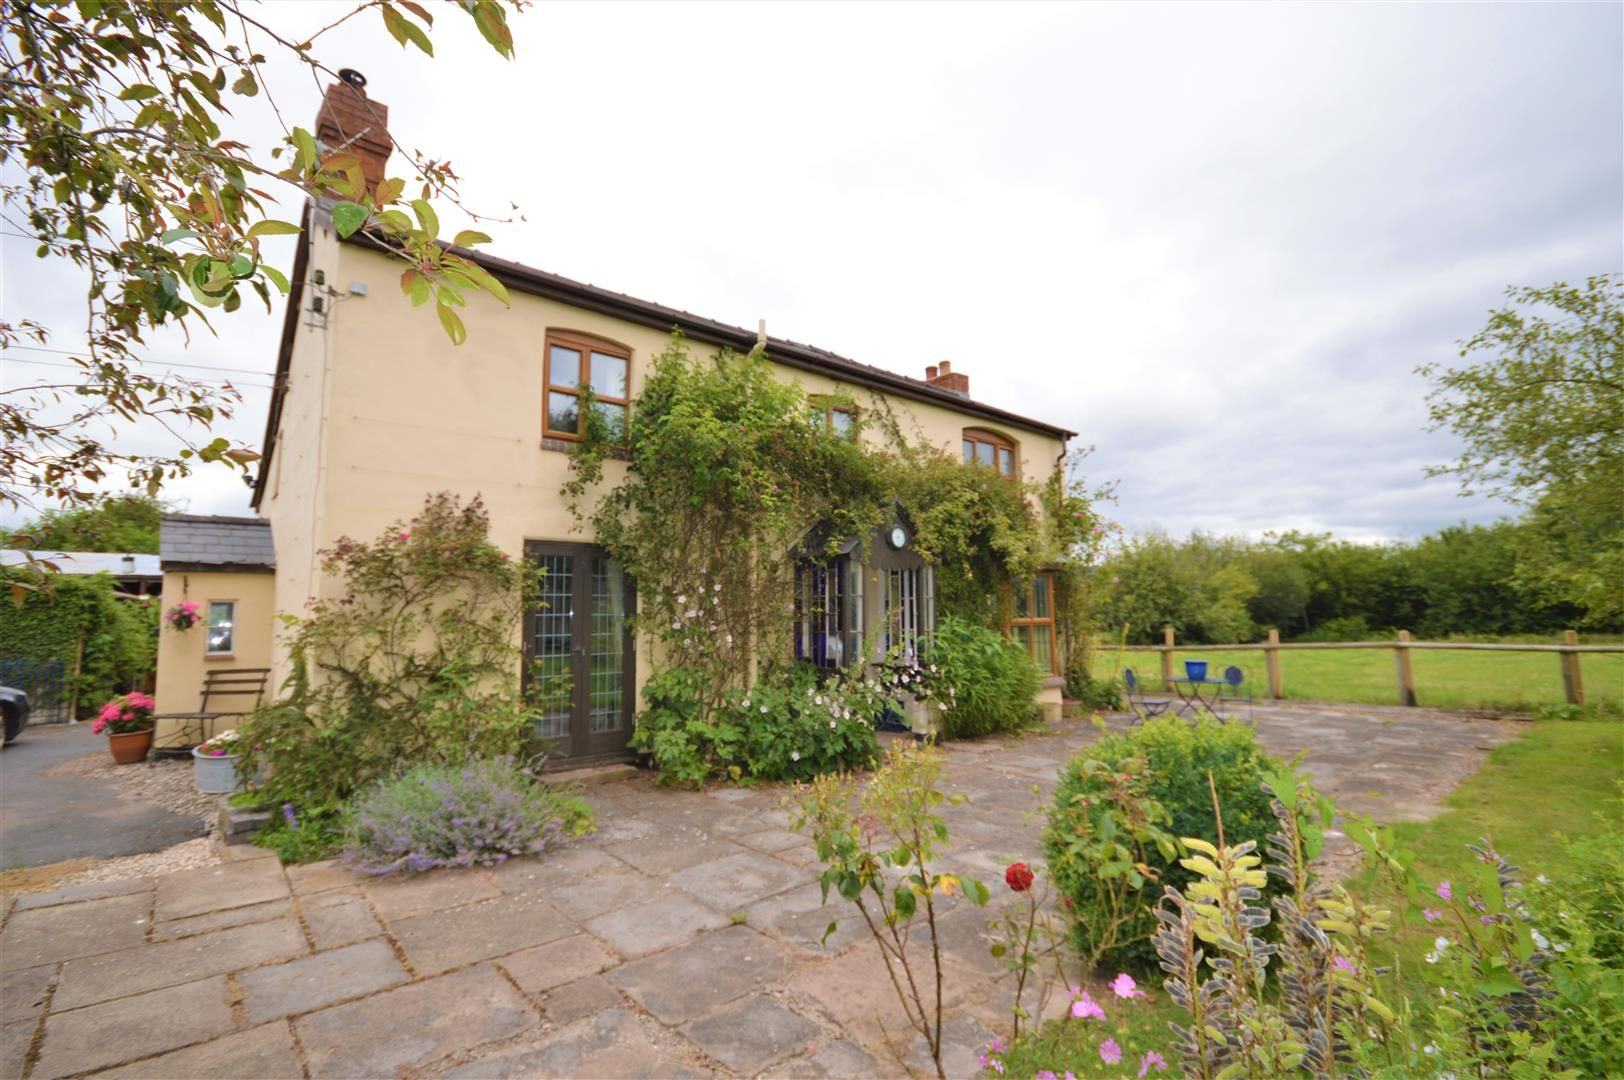 3 bed detached to rent in Preston-On-Wye, HR2